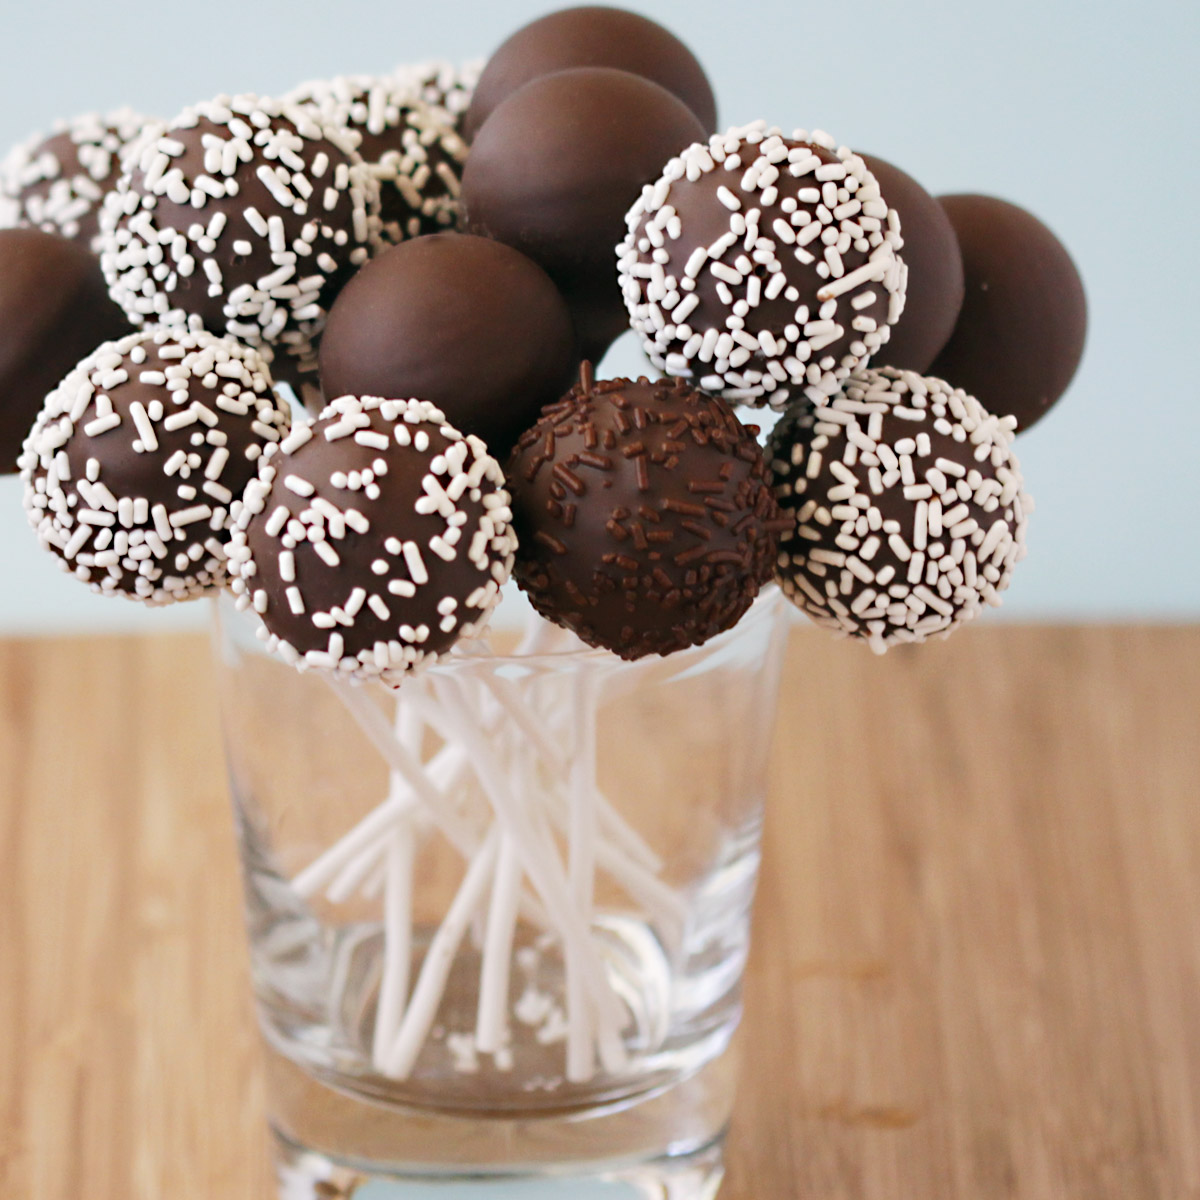 chocolate cake pops belos caramelle cake pop decorado 2829